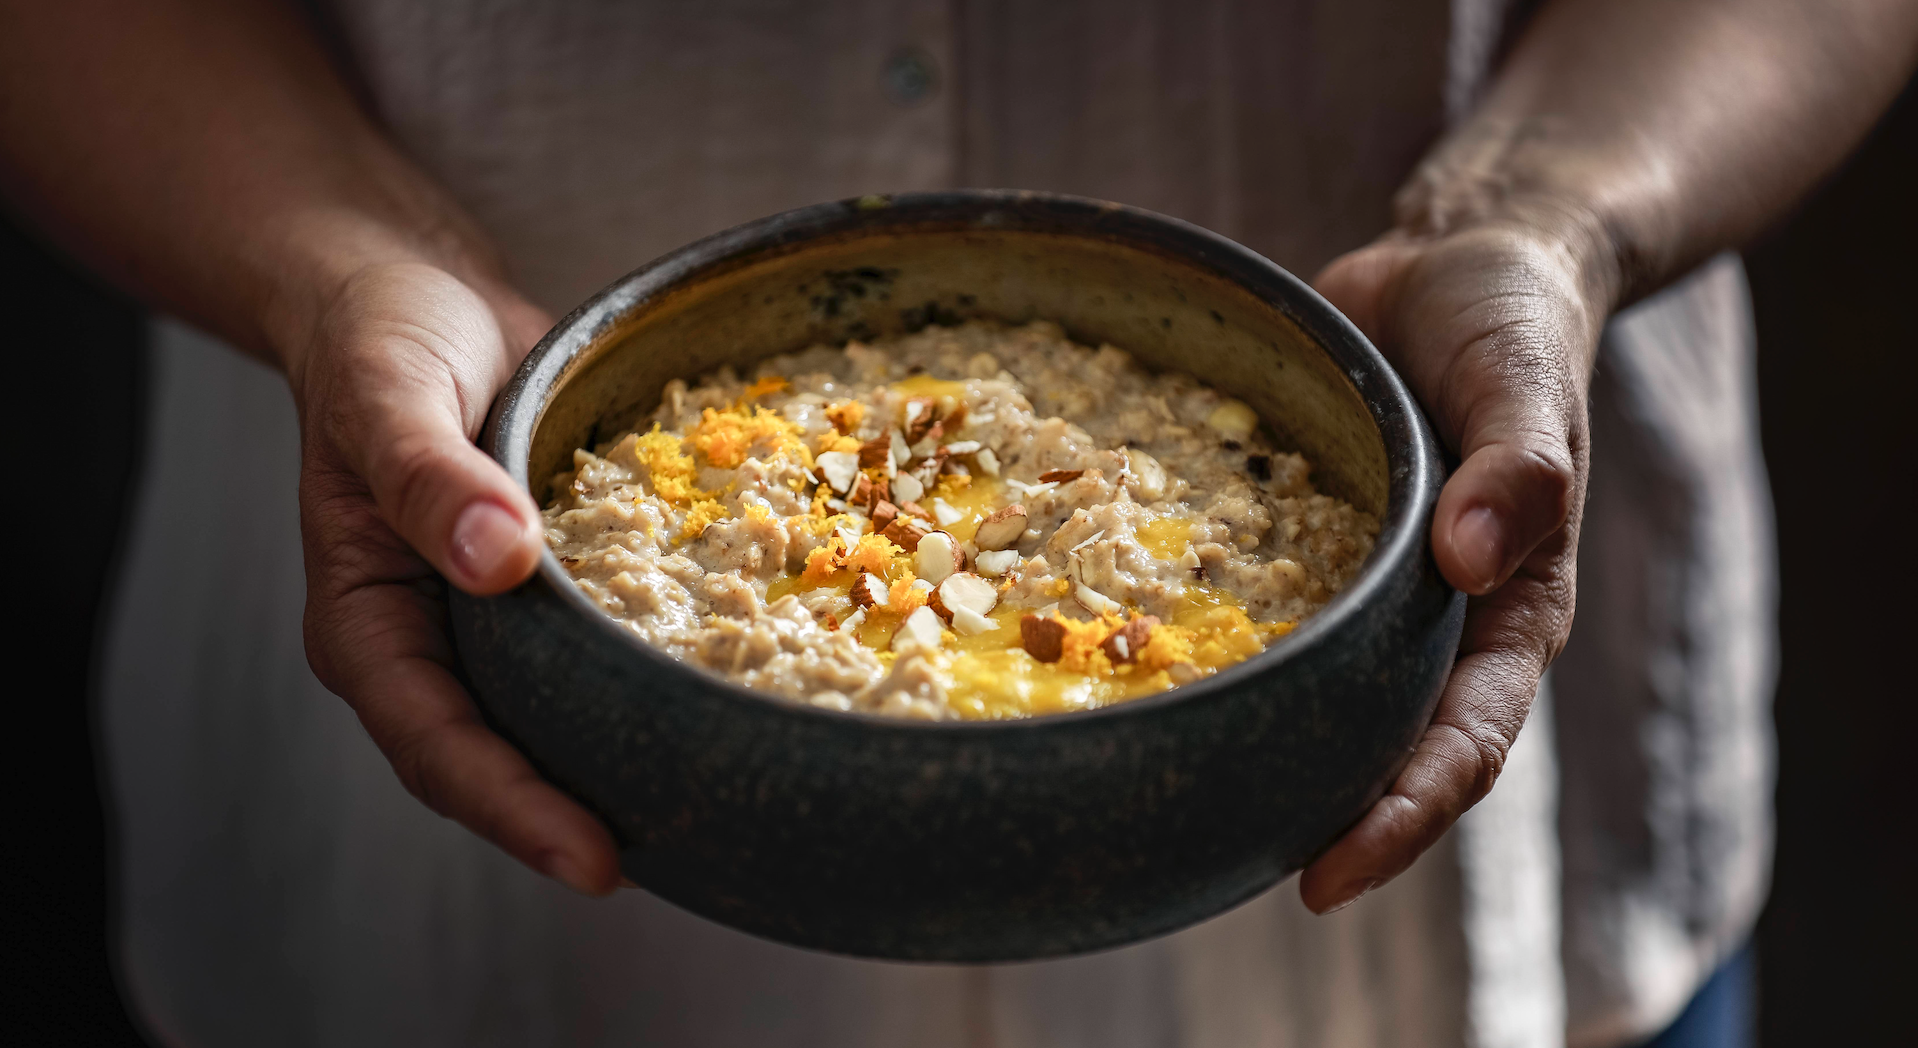 World Porridge Day 2020 - Celebrate the Real Meaning